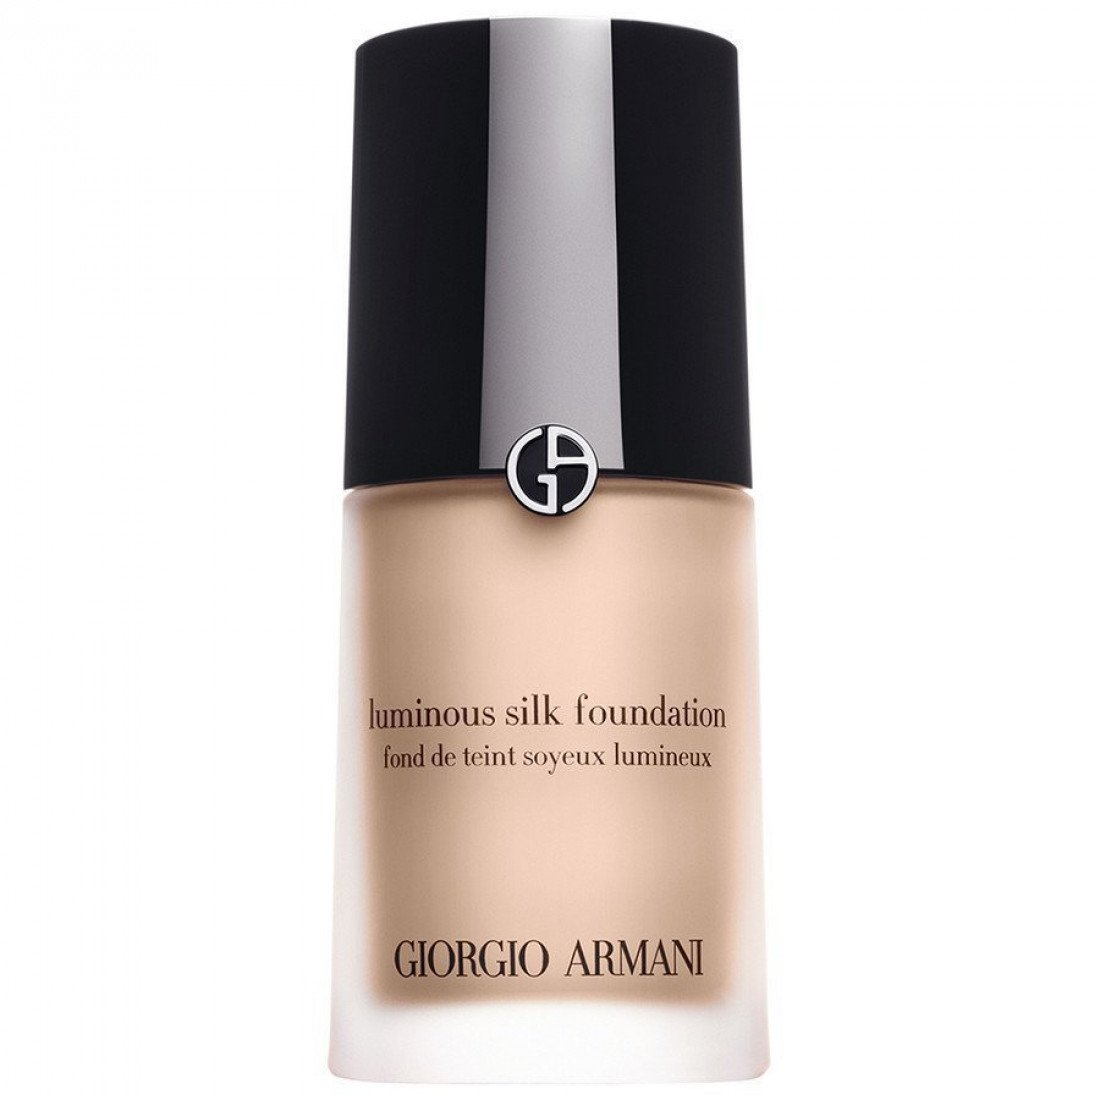 LUMINOUS SILK FOUNDATION ARMANI